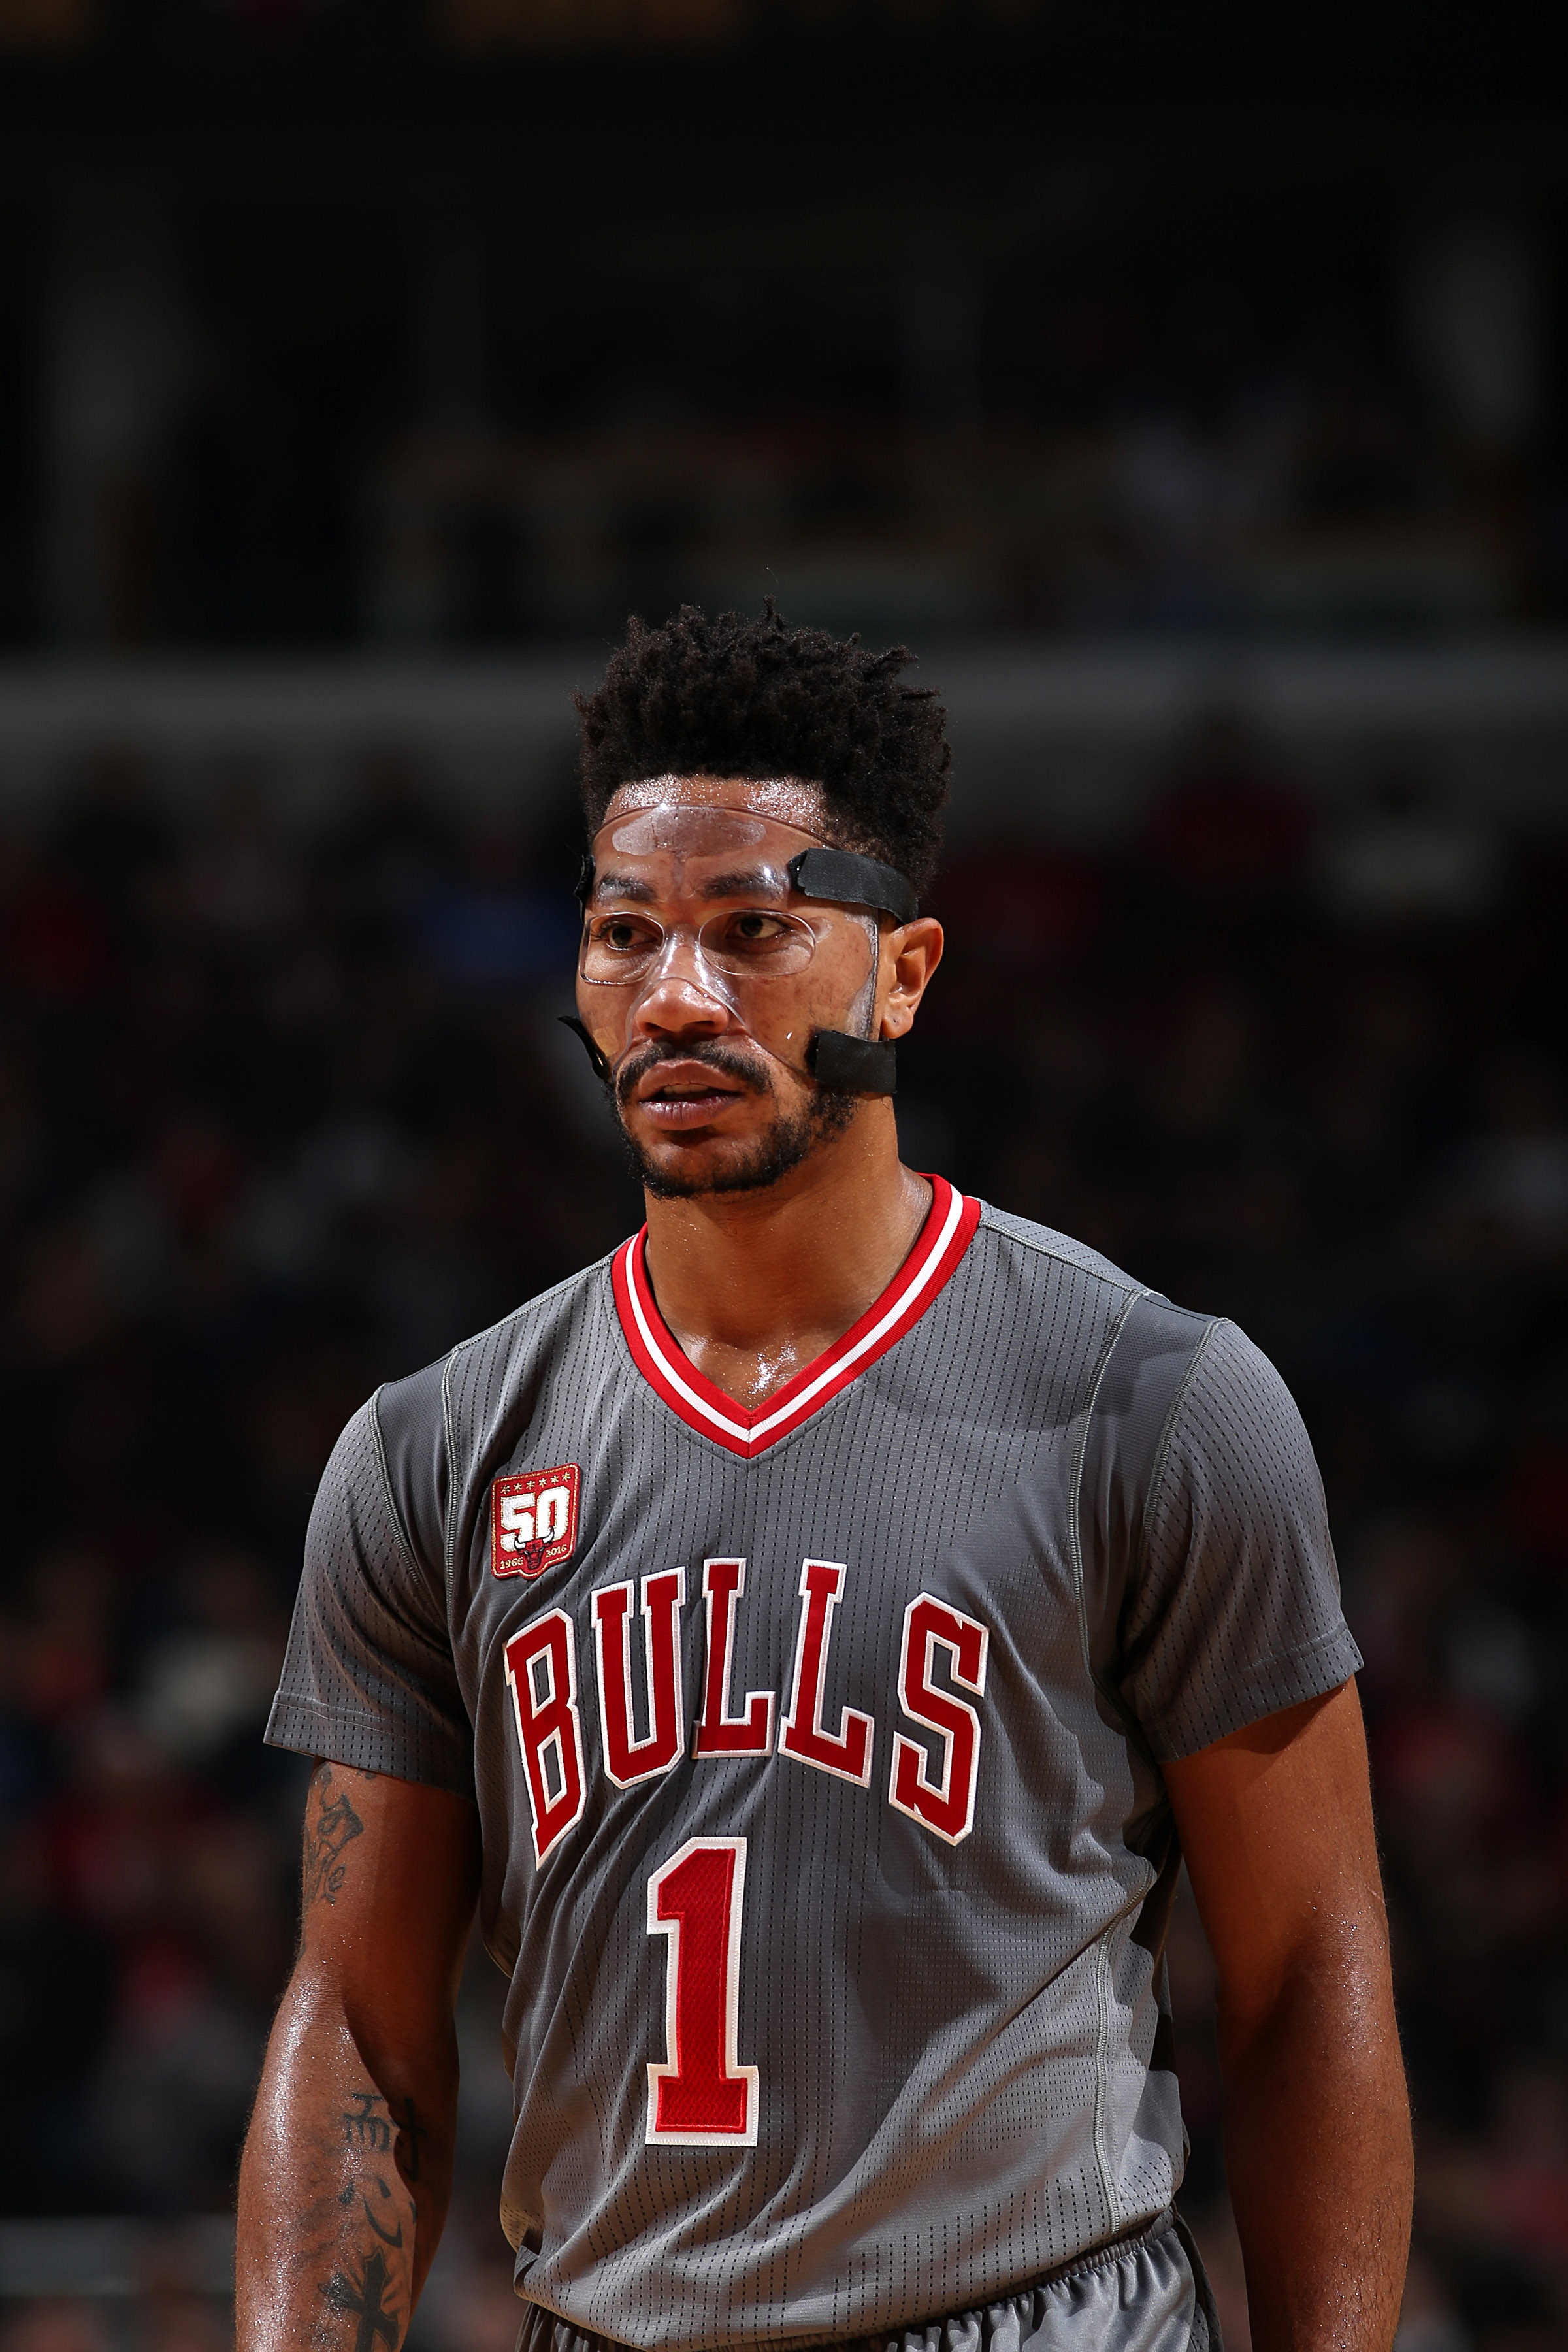 CHICAGO, IL - NOVEMBER 16: Derrick Rose #1 of the Chicago Bulls looks on during the game against the Indiana Pacers on November 16, 2015 at the United Center in Chicago, Illinois. (Photo by Gary Dineen/NBAE via Getty Images)